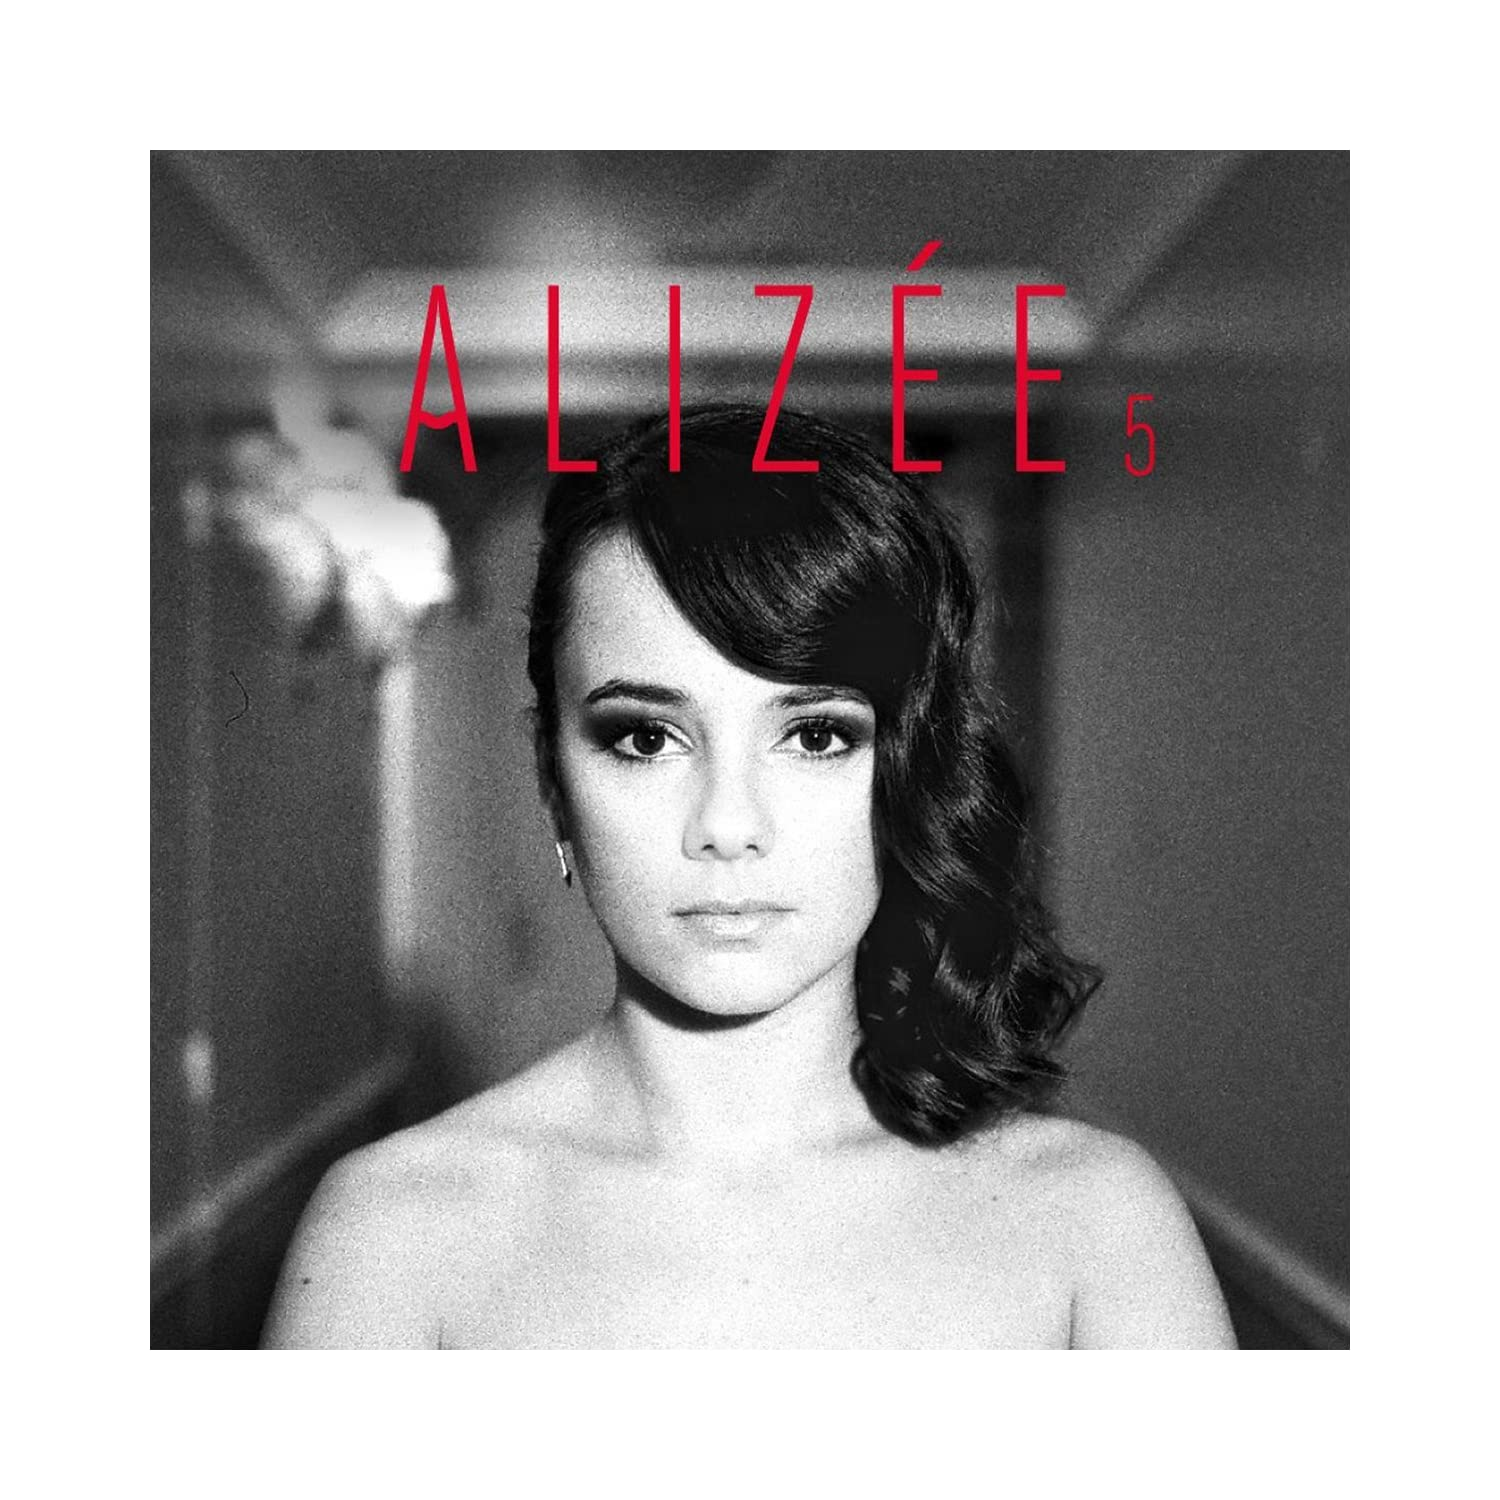 Alizée 5 on Amazon.fr